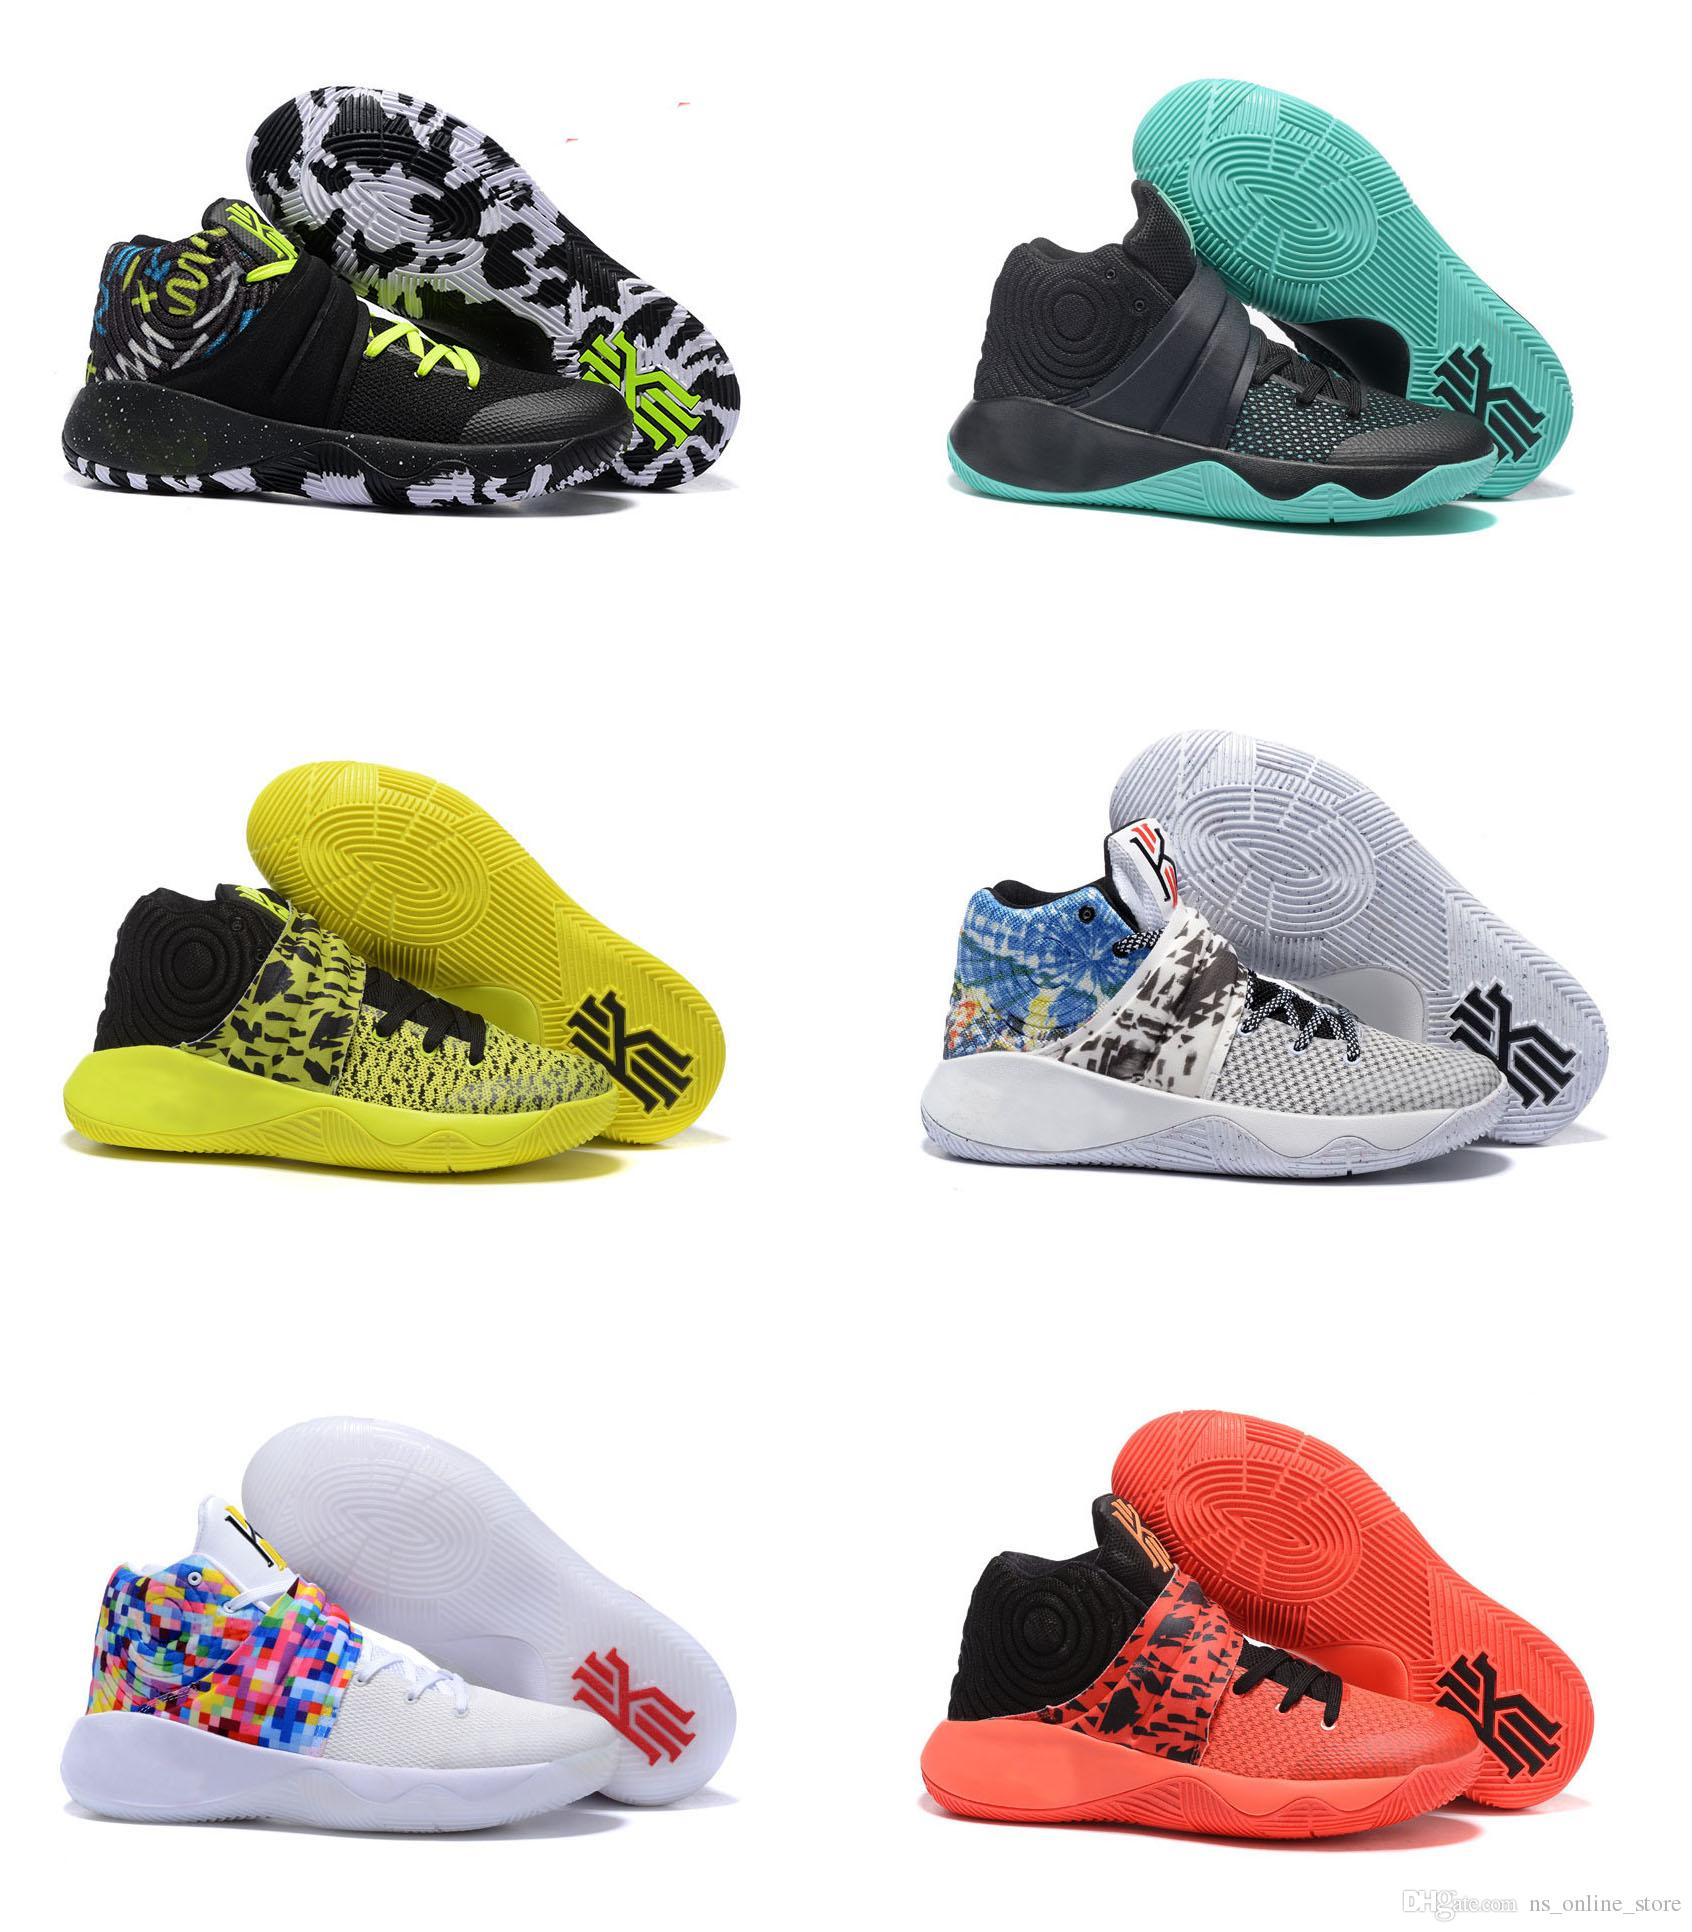 59b606bd6e83 2017 Hot Kyrie Irving Basketball Shoes For Men Kyrie 2 Bright Crimson Tie  Dye BHM All Star Basketball High Quality Outdoor Sports Sneakers Buy Shoes  Online ...